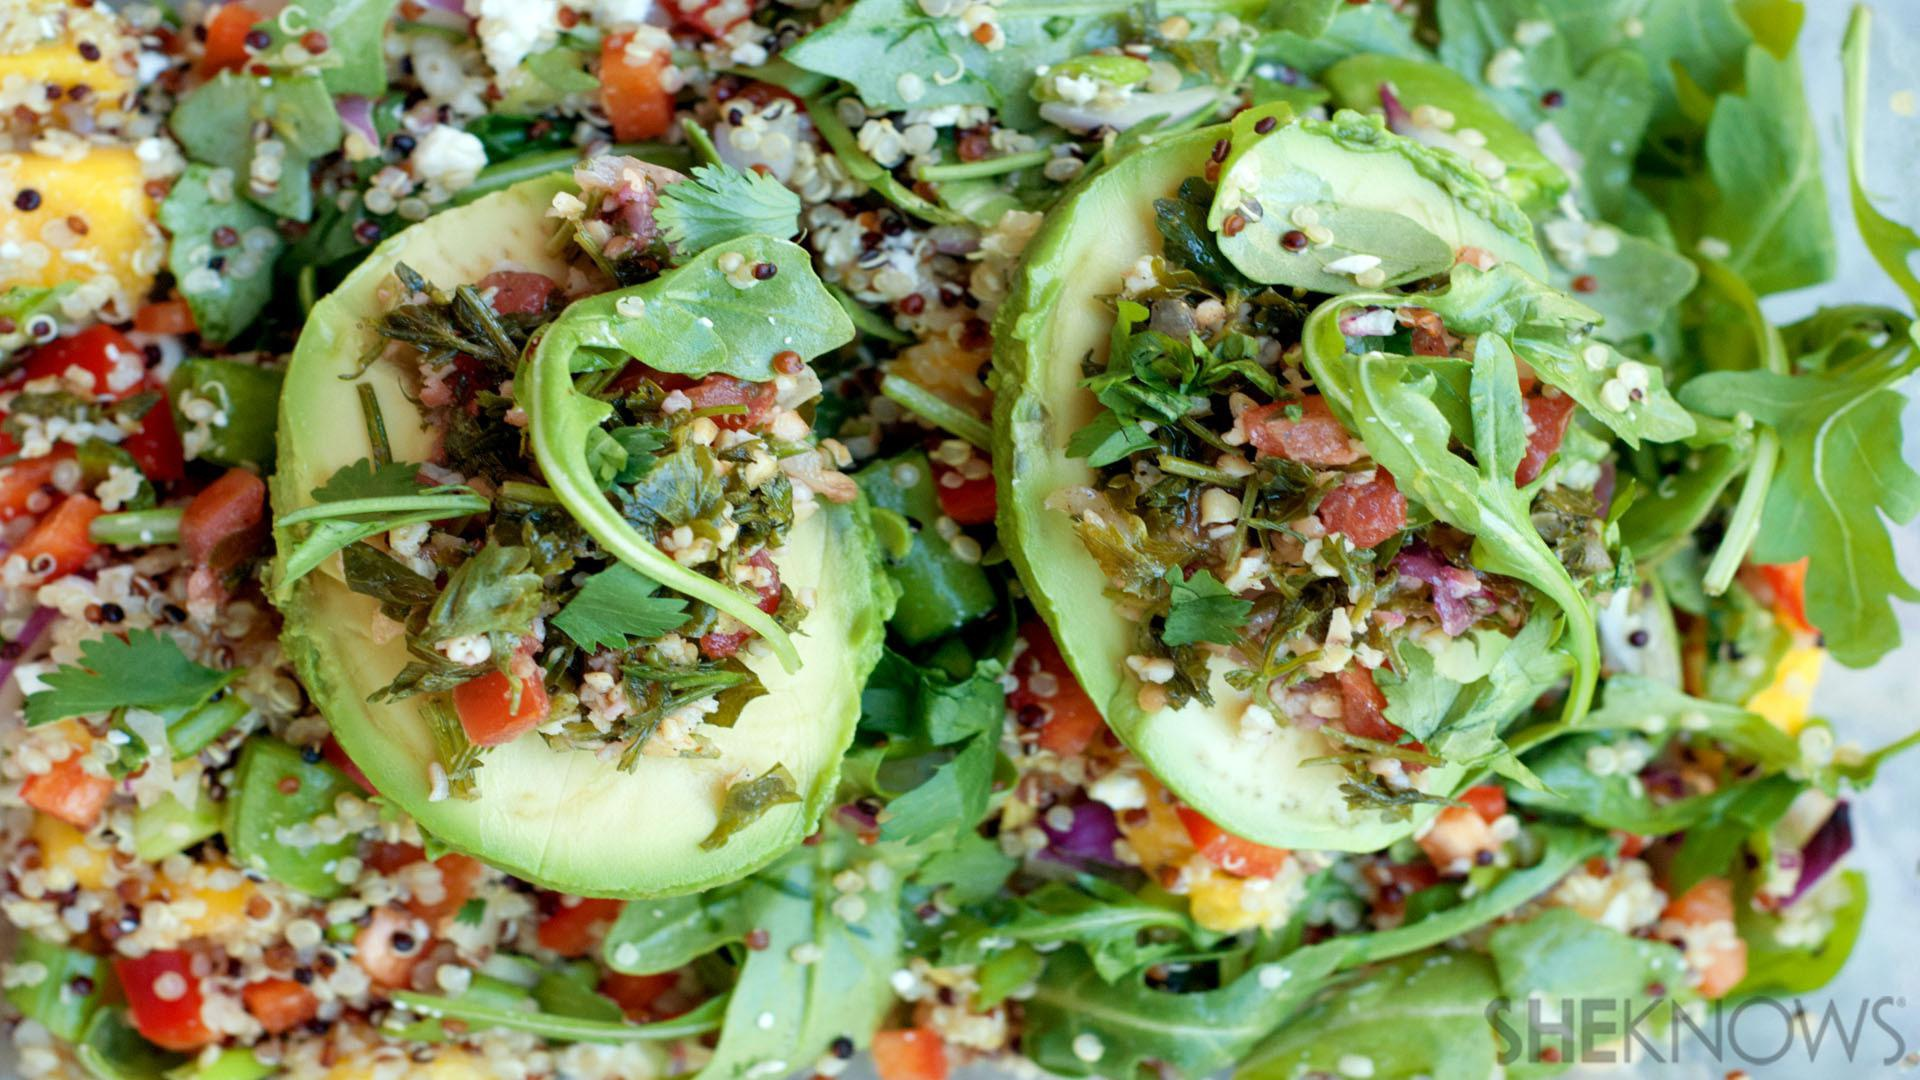 Tabbouleh salad-stuffed avocados